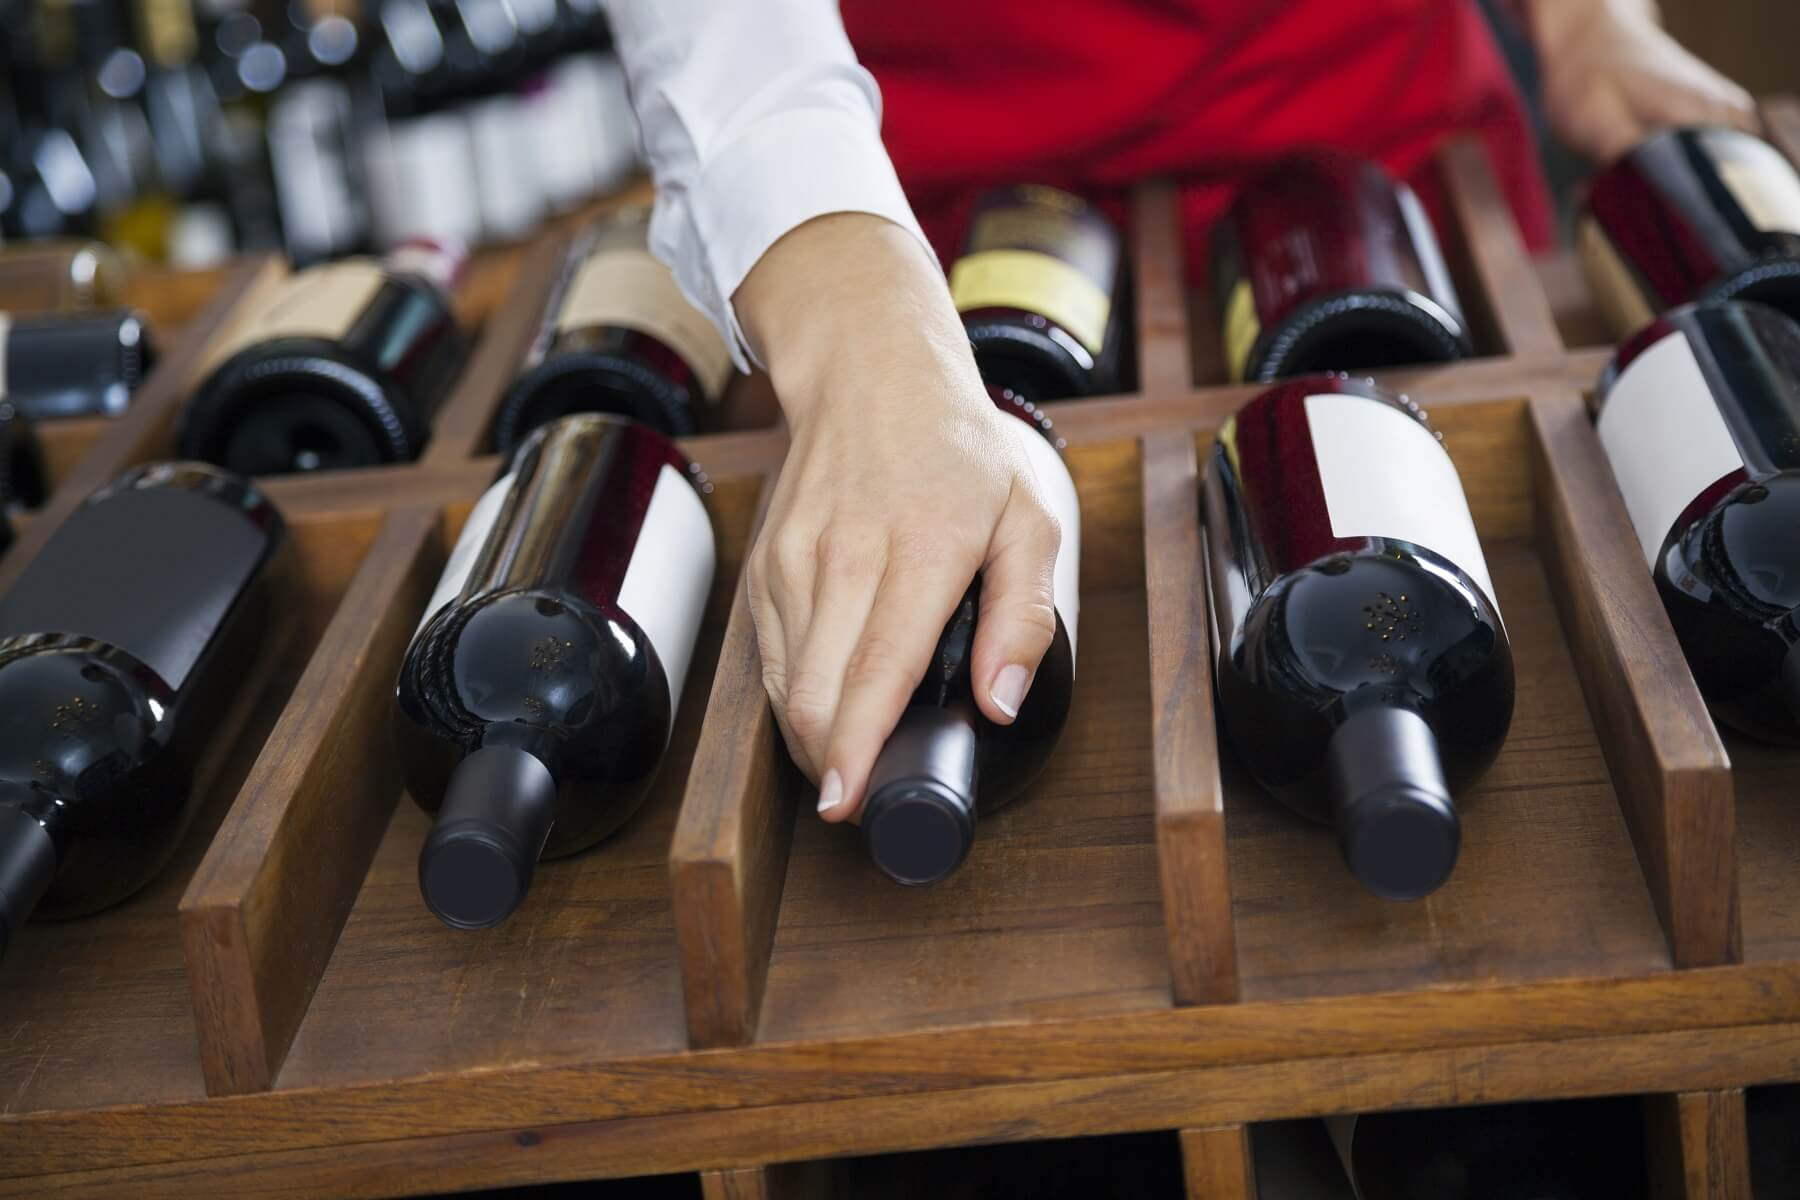 How To Decode Wine Labels in 3 Easy Steps